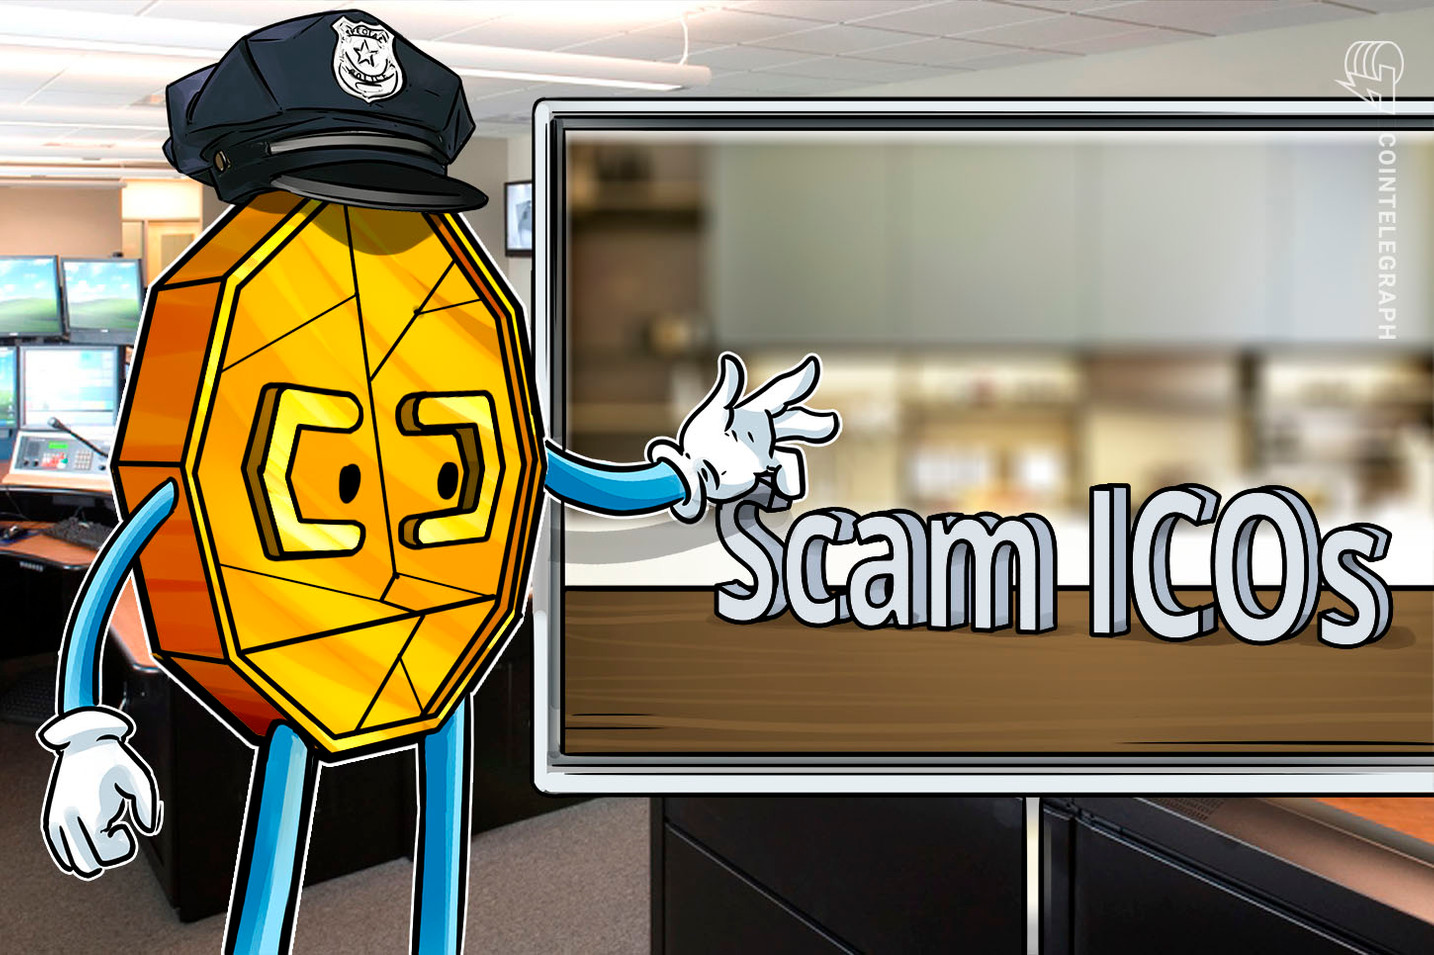 FBI Outline Key Features of Scam ICOs, Warns Investors to Be Vigilant